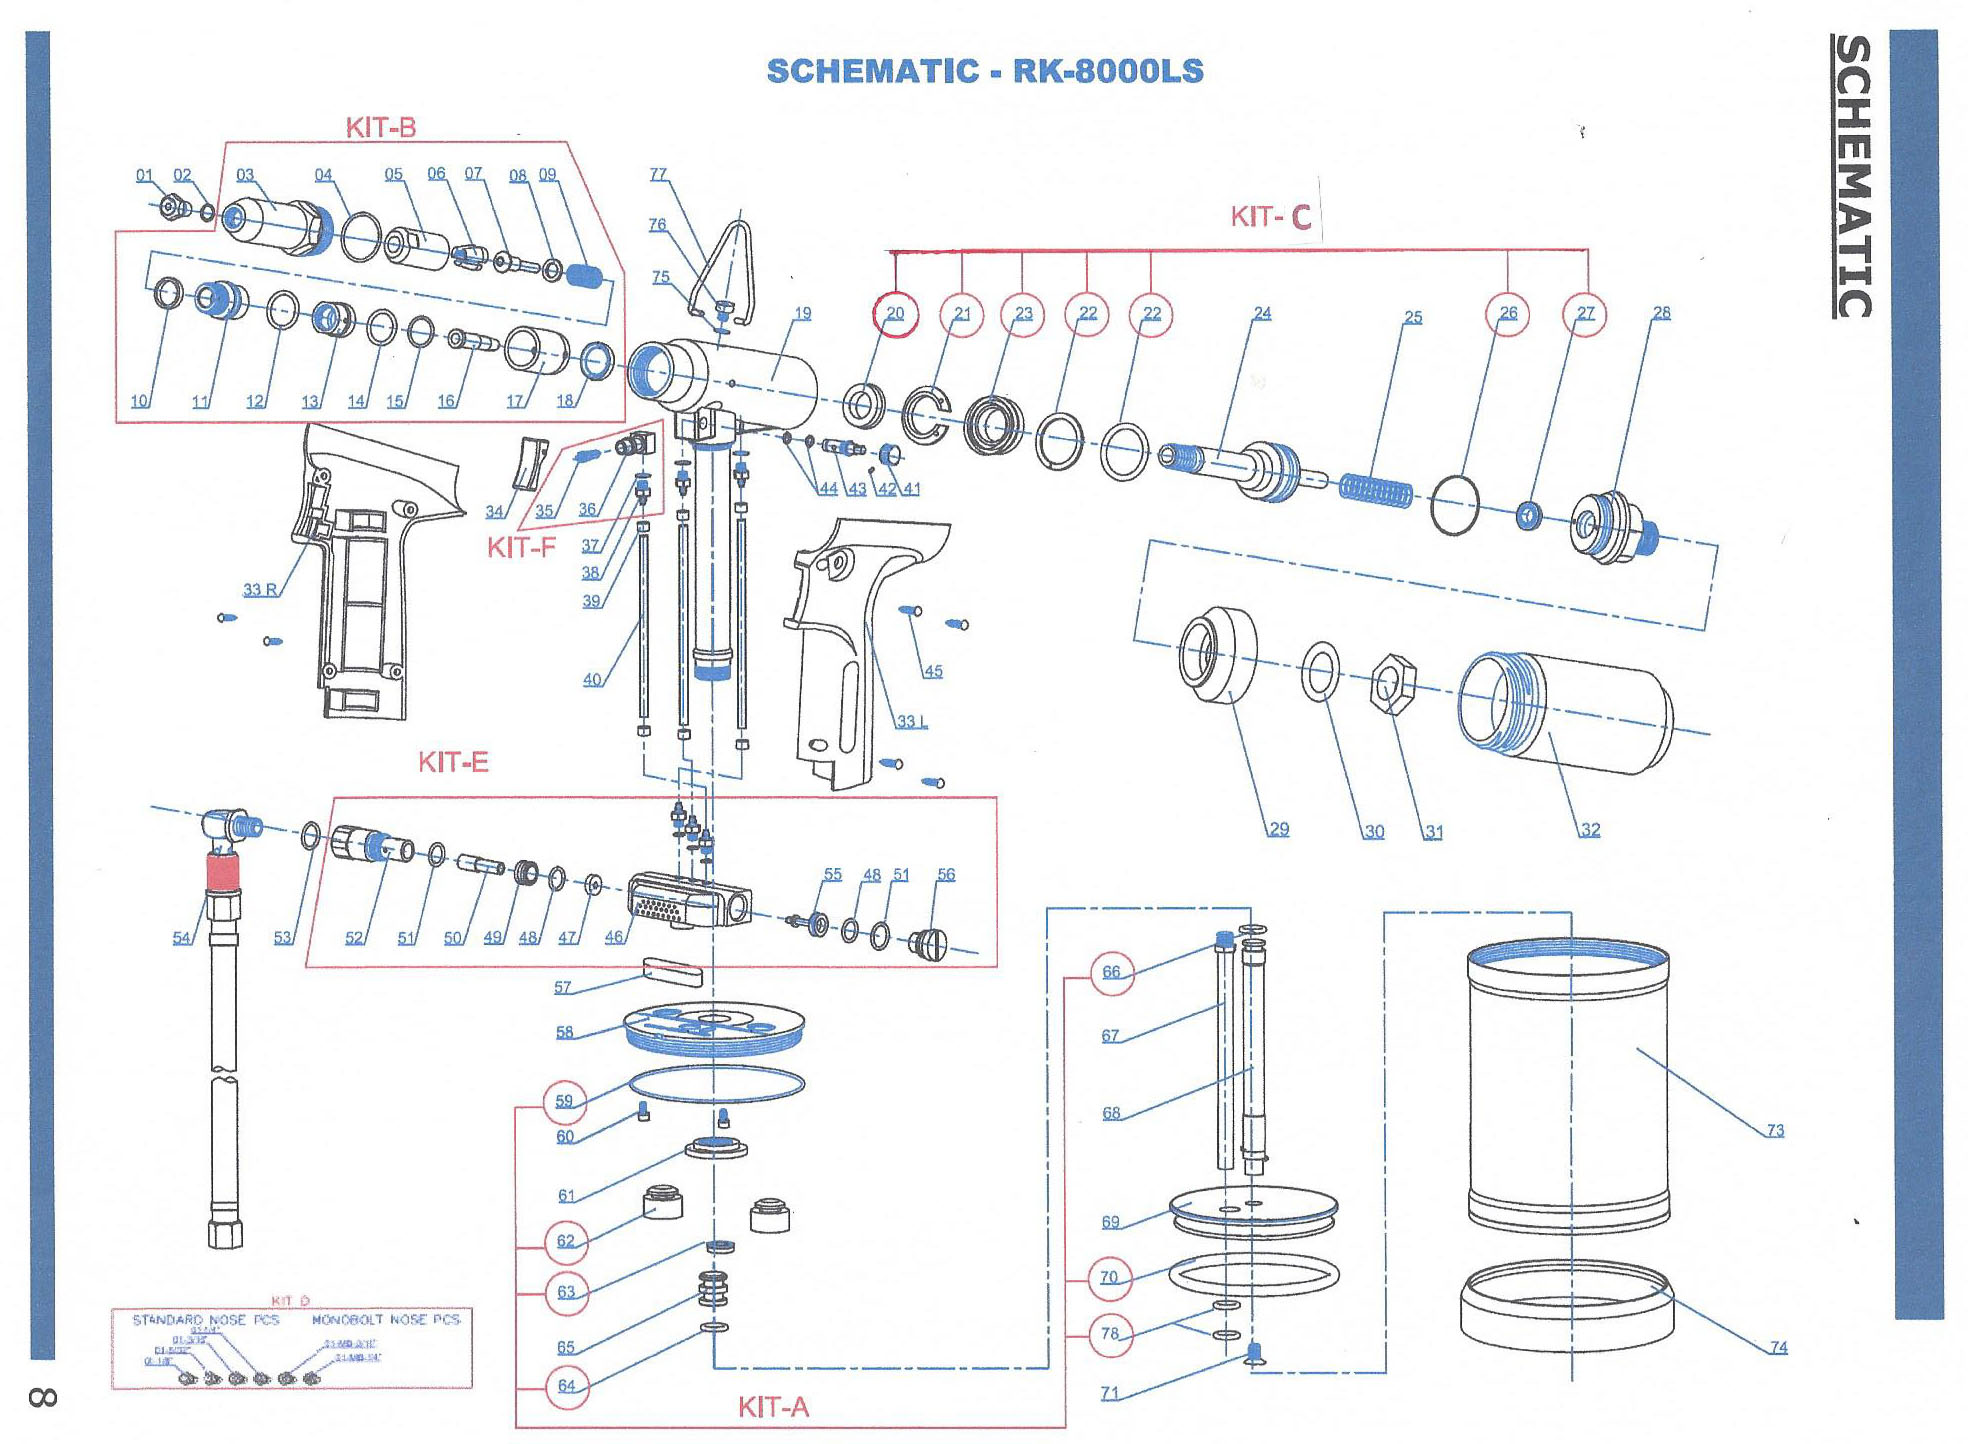 Rivet king 8000ls parts schematic